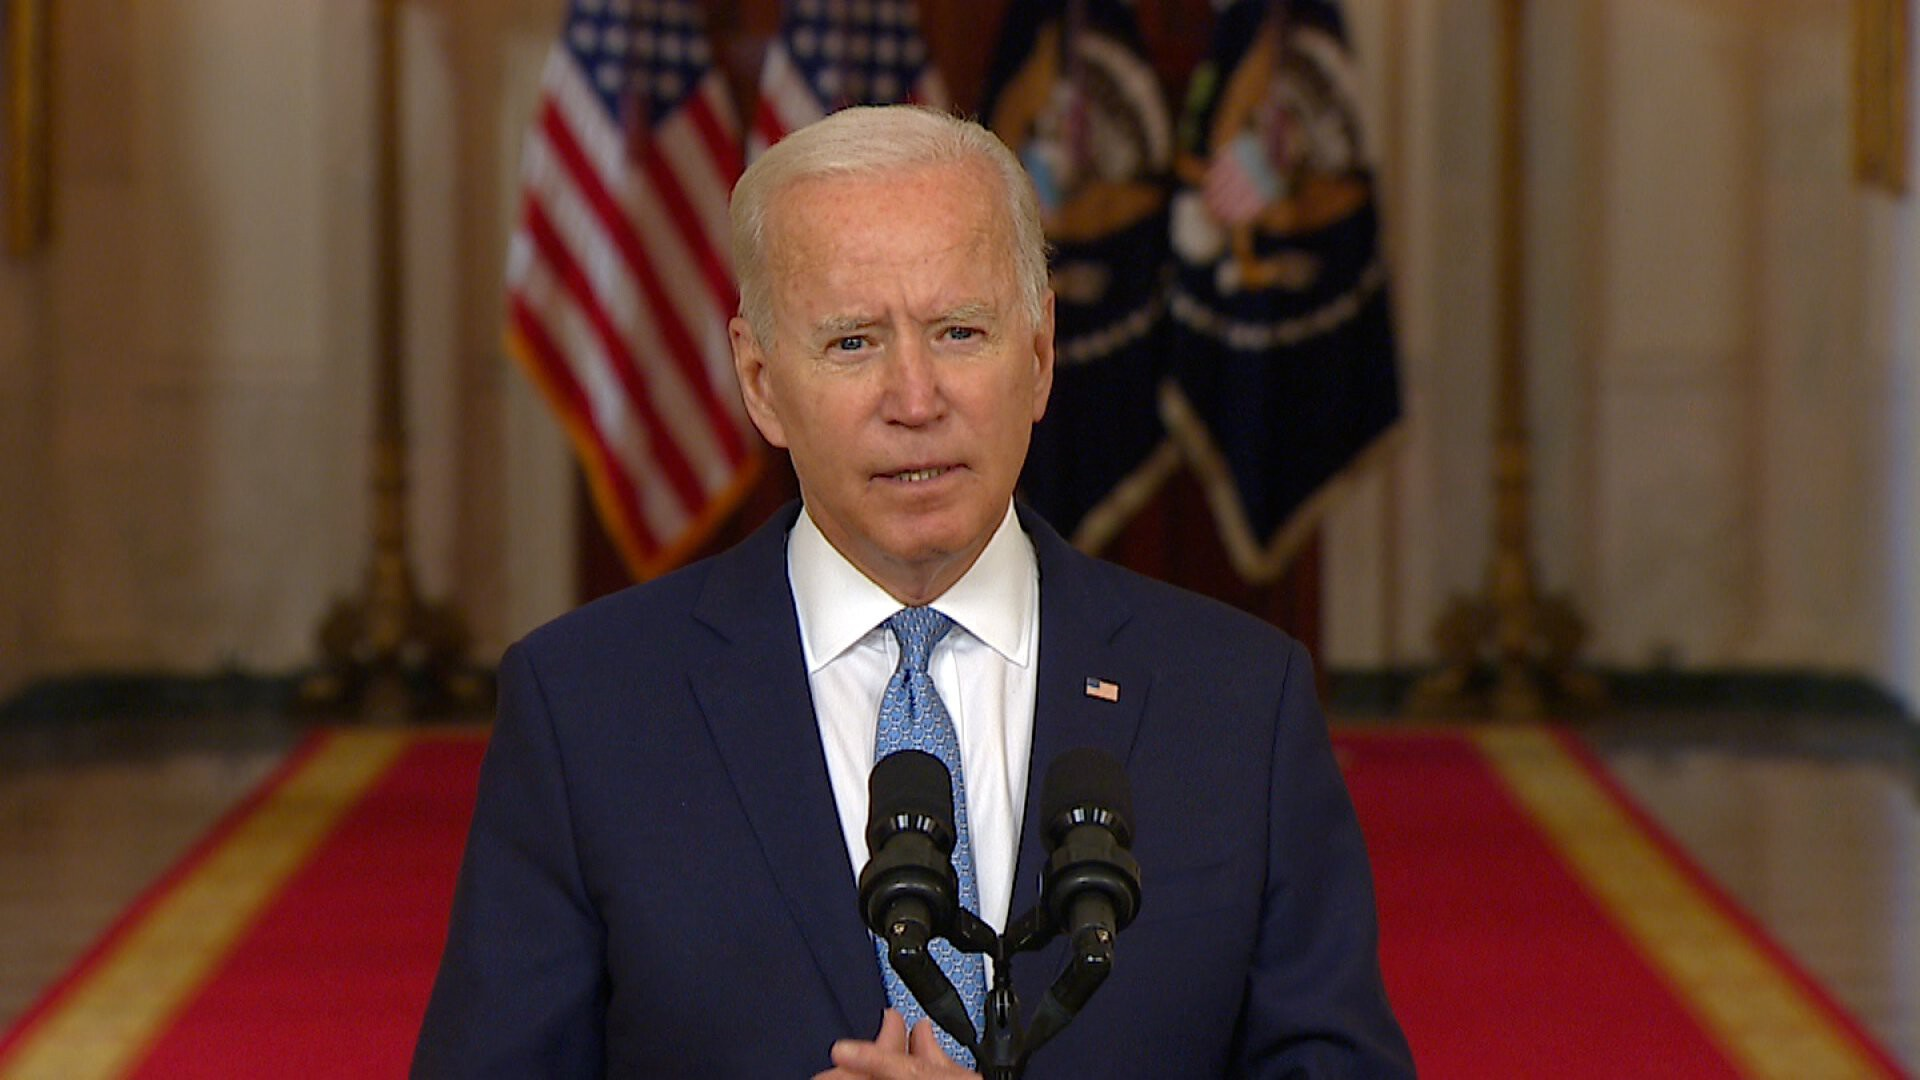 Biden gives a defiant defense of the withdrawal from Afghanistan: 'I was not extending a forever exit'